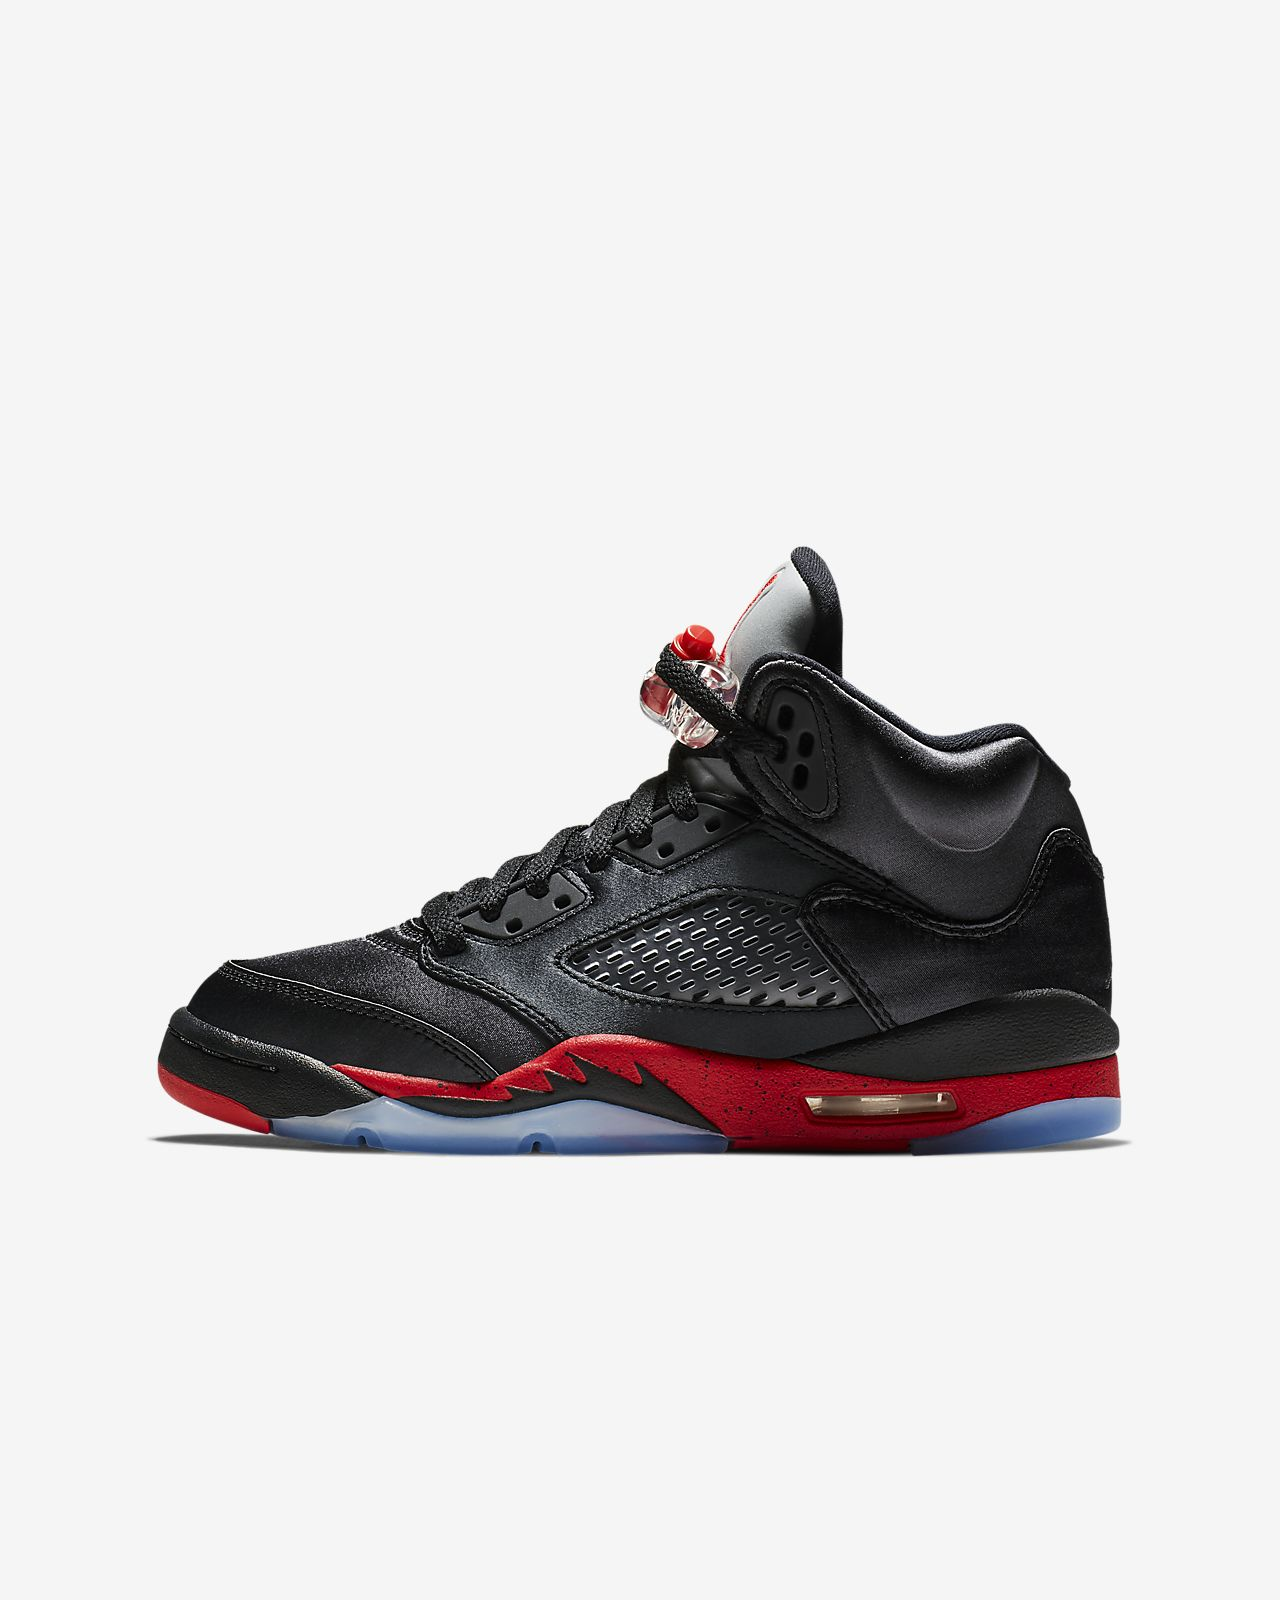 7f4a026e7c483 Air Jordan 5 Retro Older Kids  Shoe. Nike.com CA